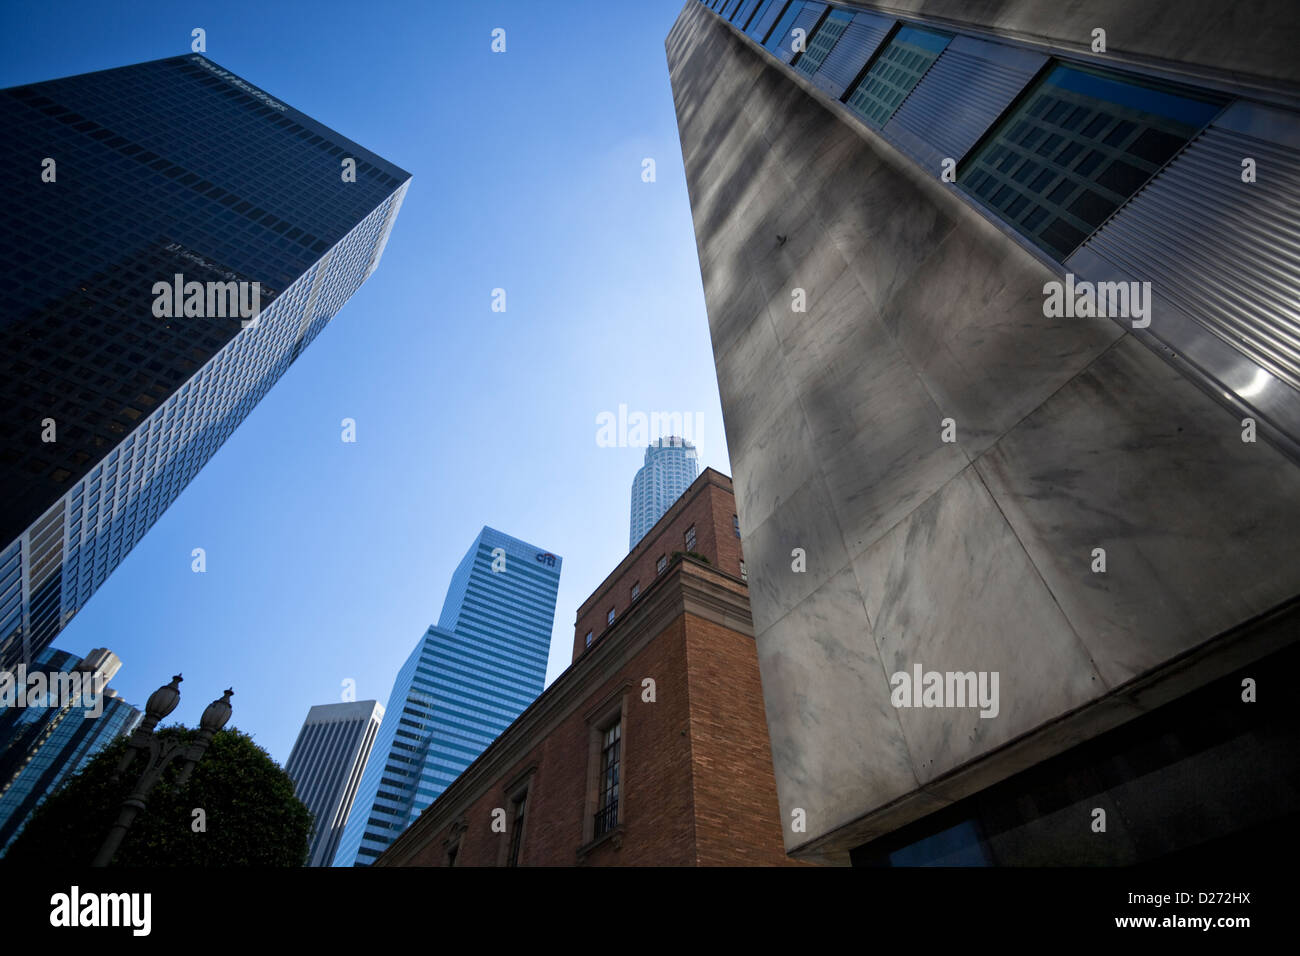 Skyscrapers in downtown Los Angeles City, Business District, California, USA.. - Stock Image